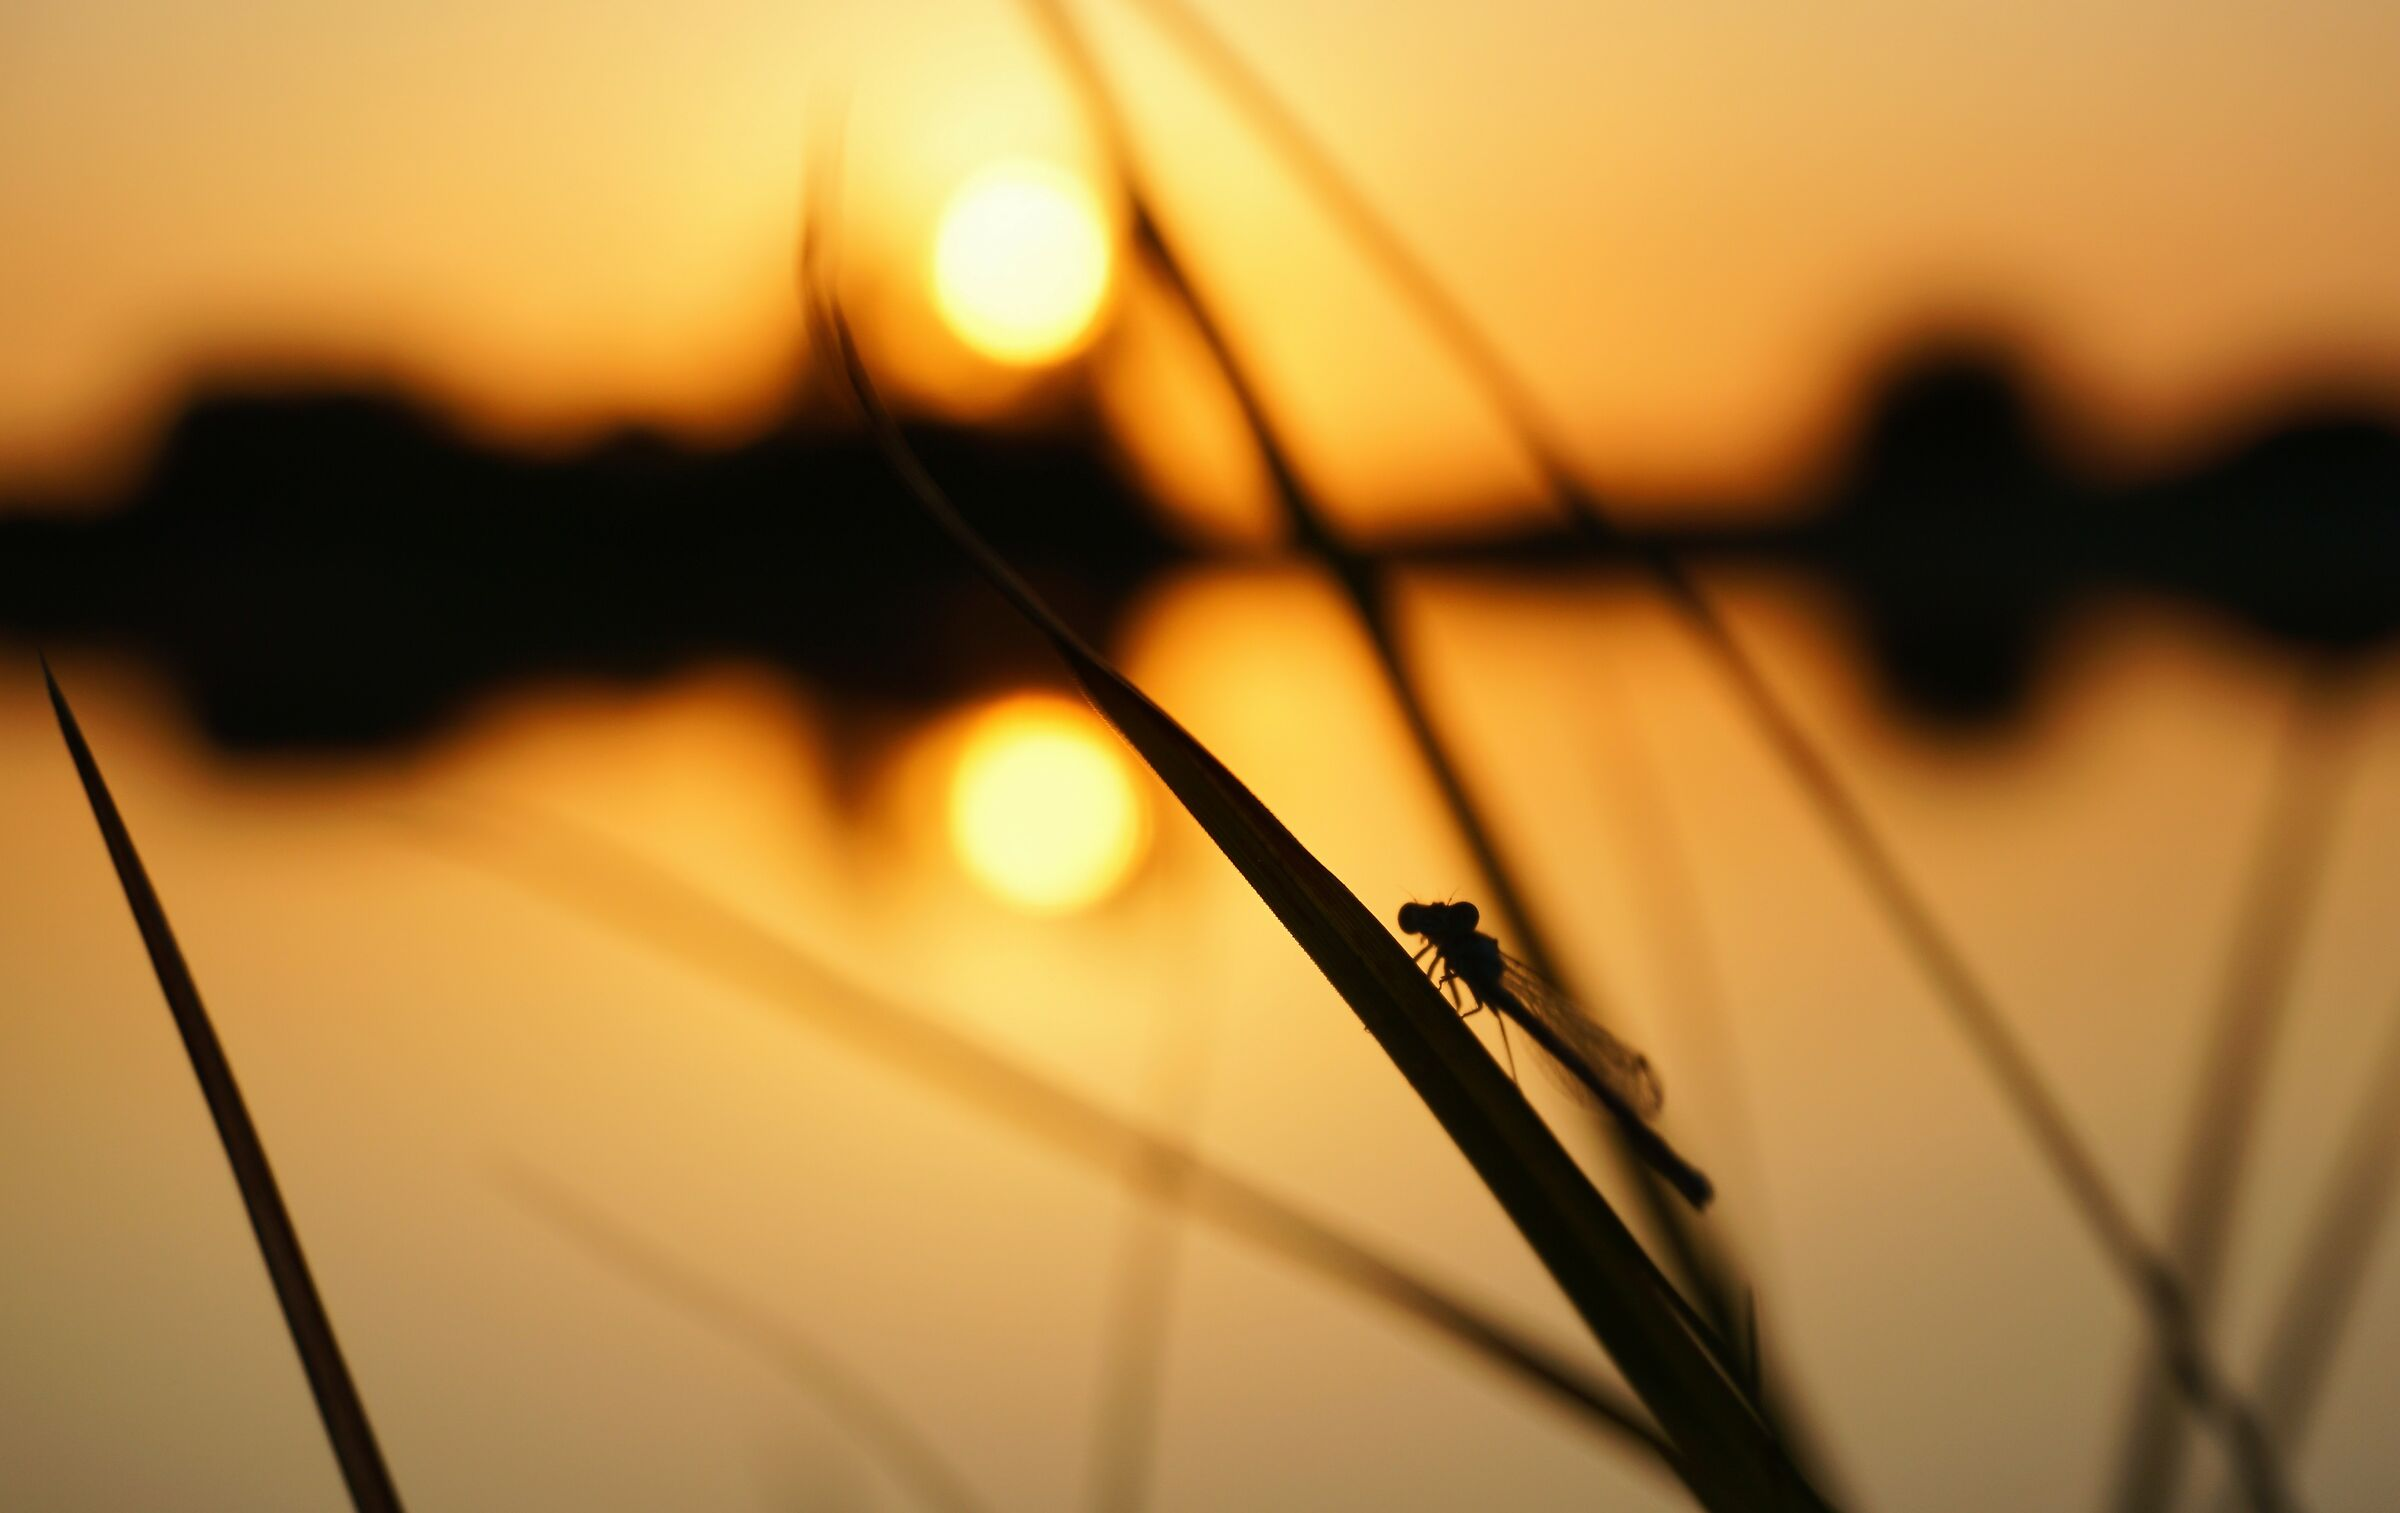 A dragonfly in the sun...